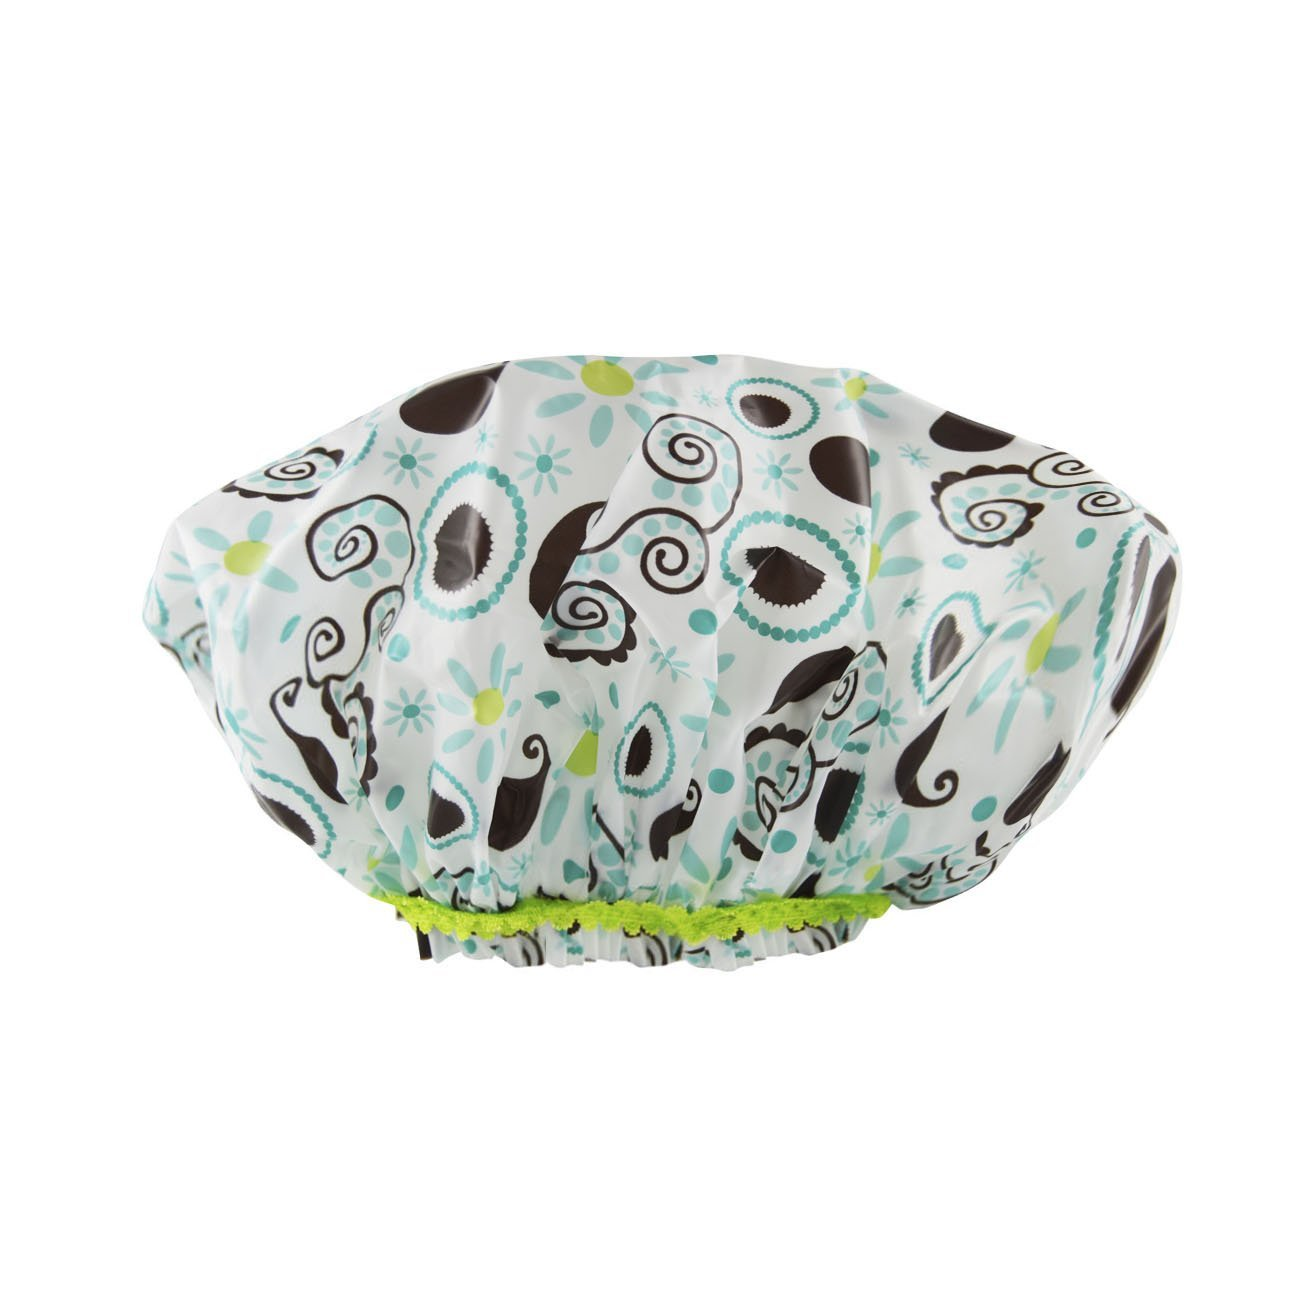 Recommended Reusable Vinyl Shower Cap Bath Elastic PEVA New product! New type Stret Frosted